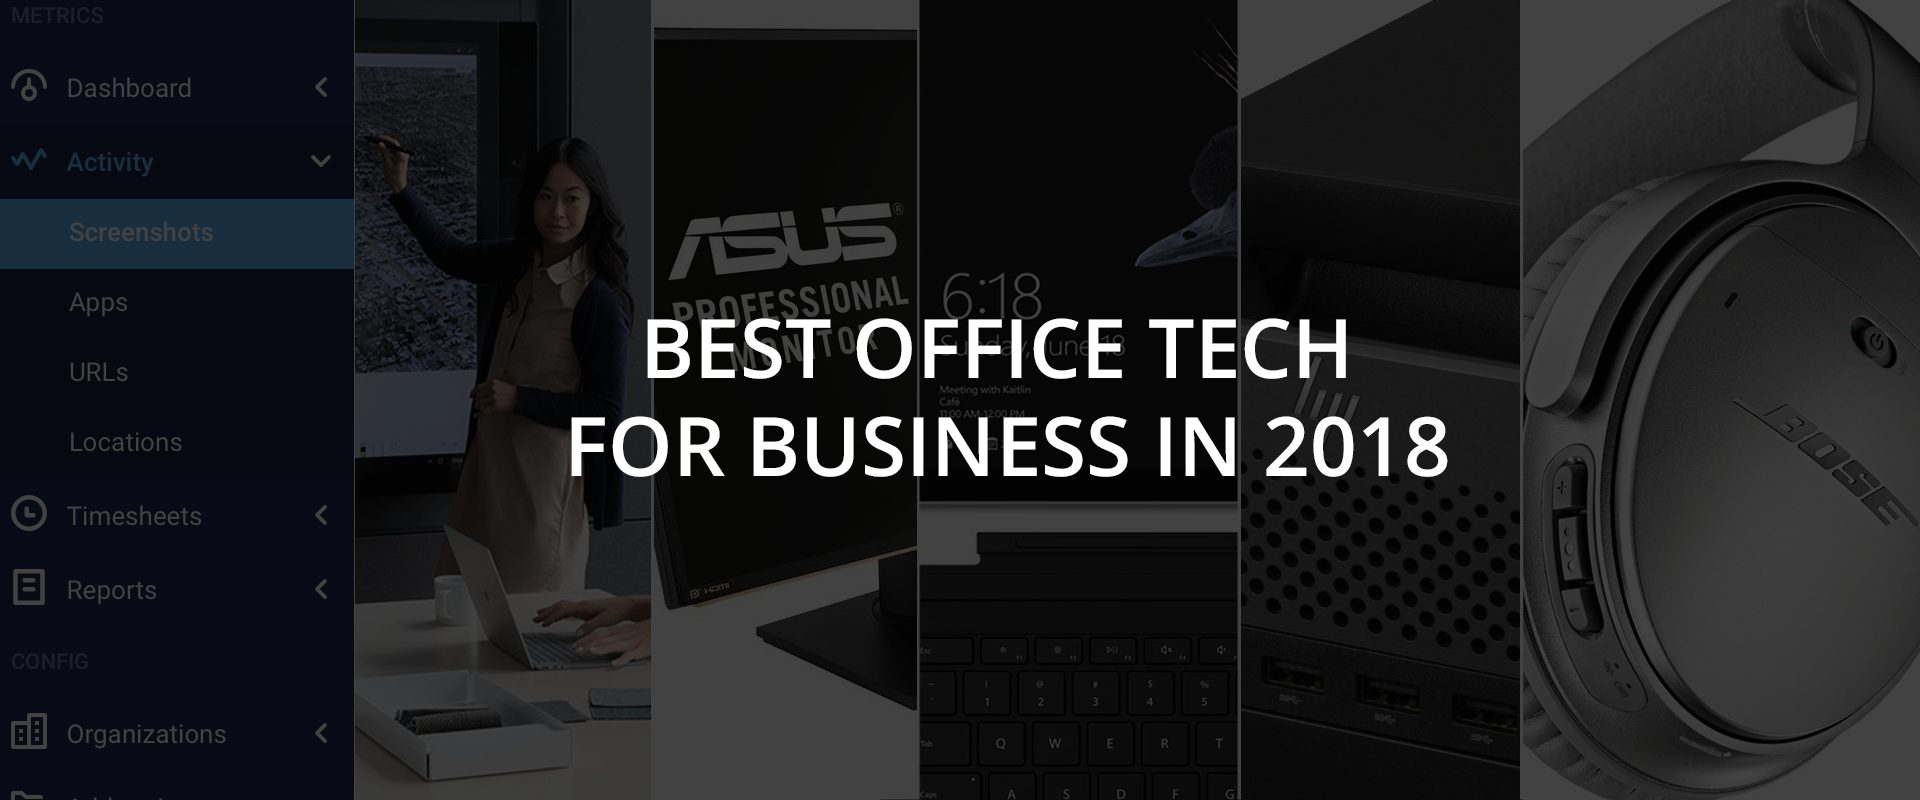 BEST OFFICE TECH FOR BUSINESS IN 2018